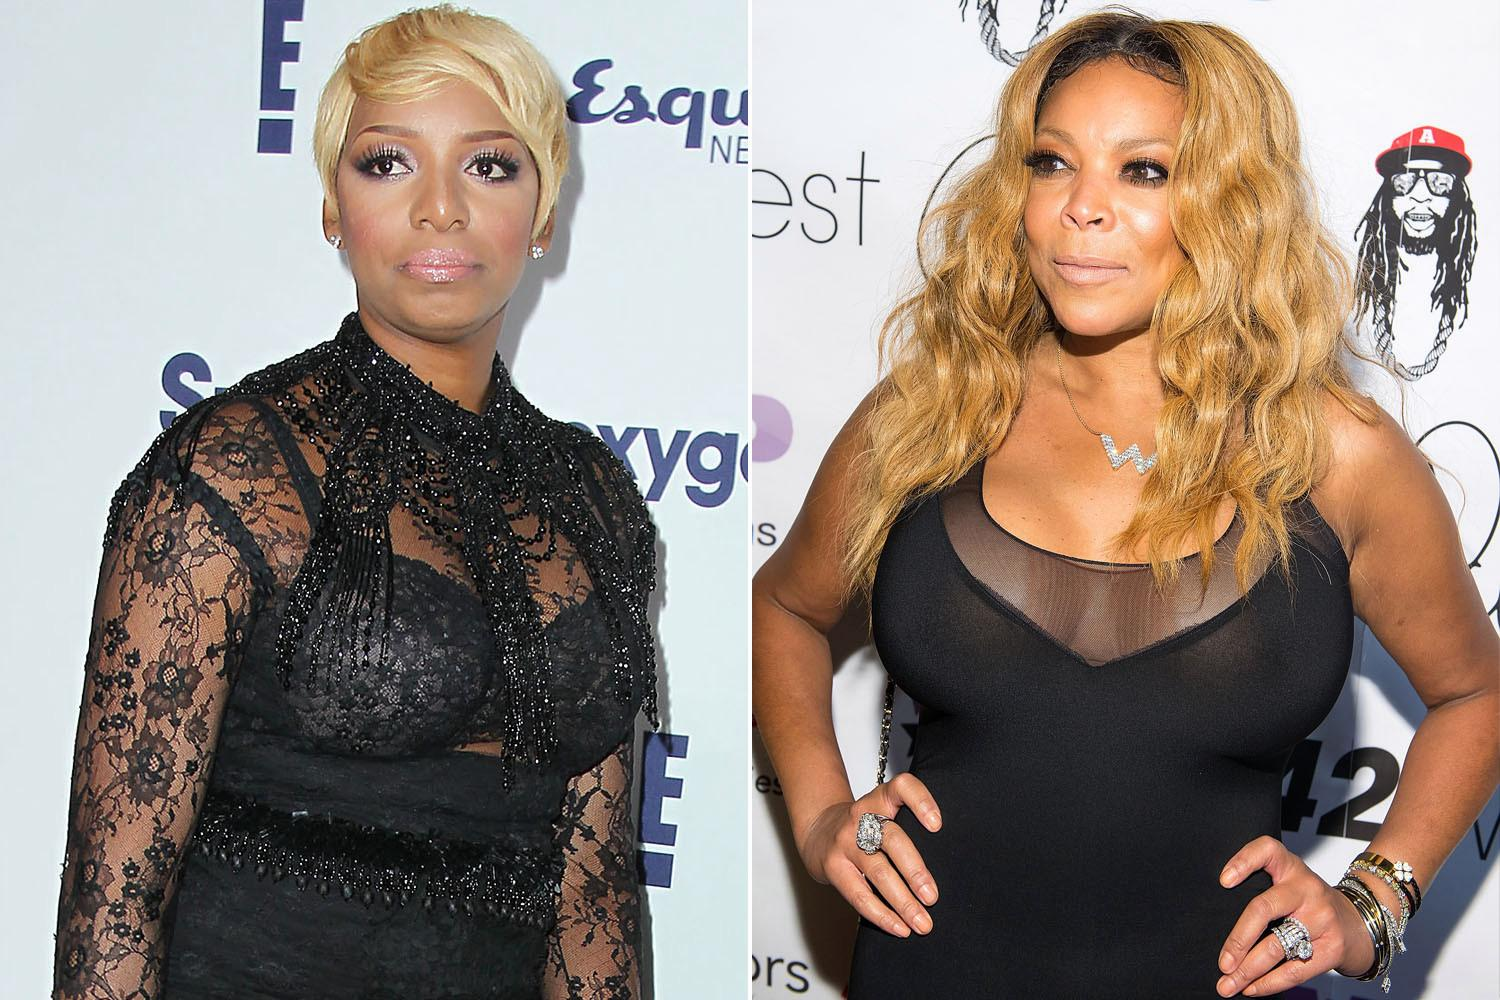 NeNe Leakes Hangs Out With Wendy Williams And Gushes Over Her On Social Media